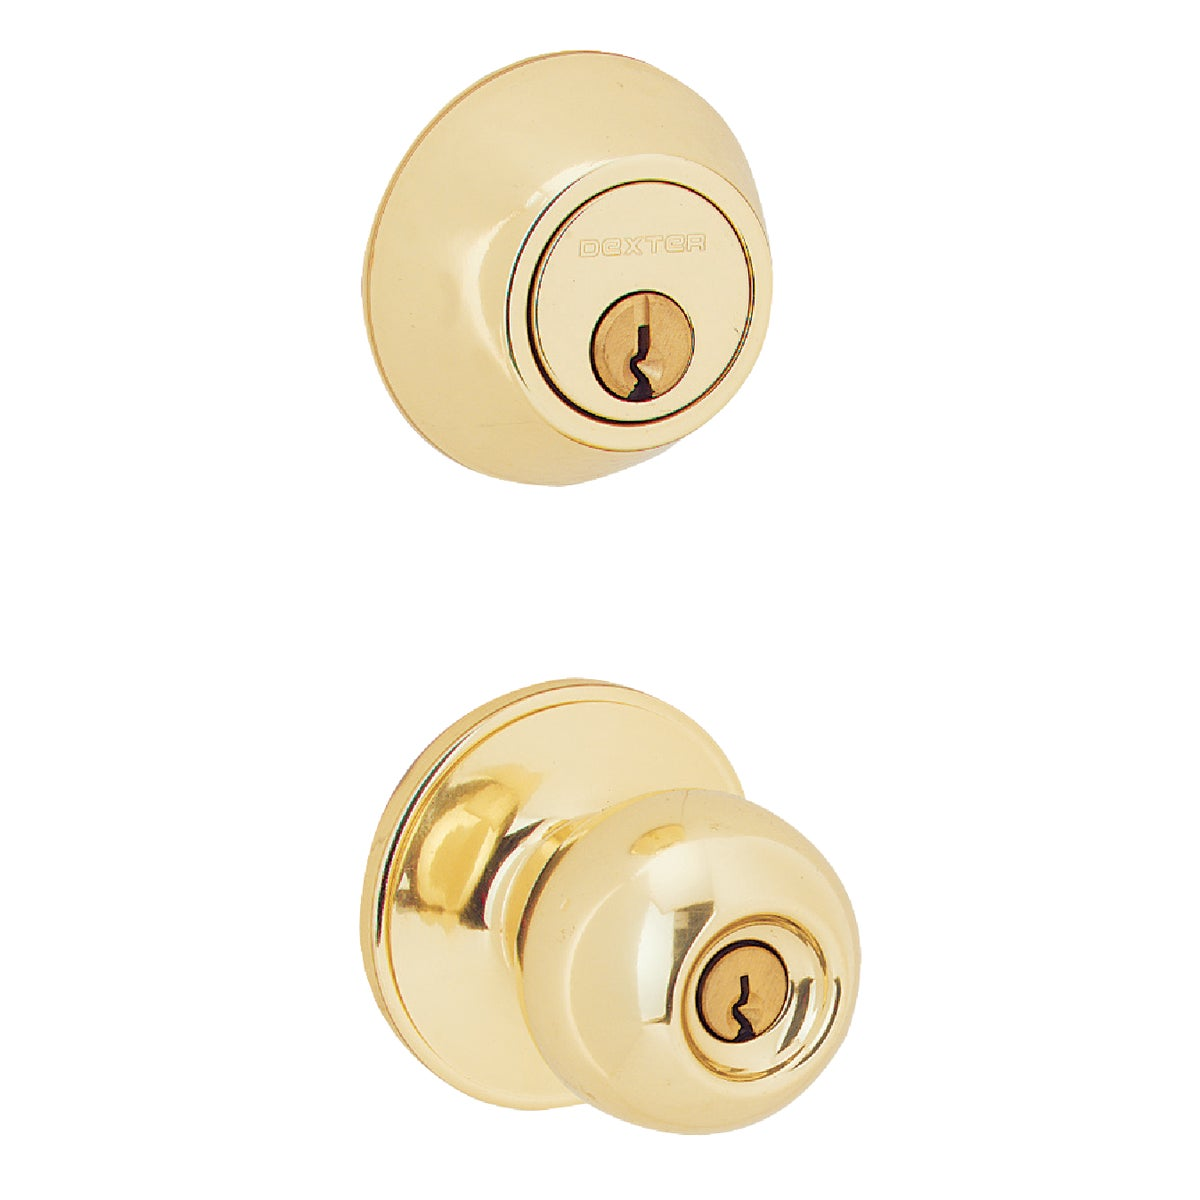 CORONA SECUTY COMBO PACK - JC60VCNA605 by Schlage Lock Co